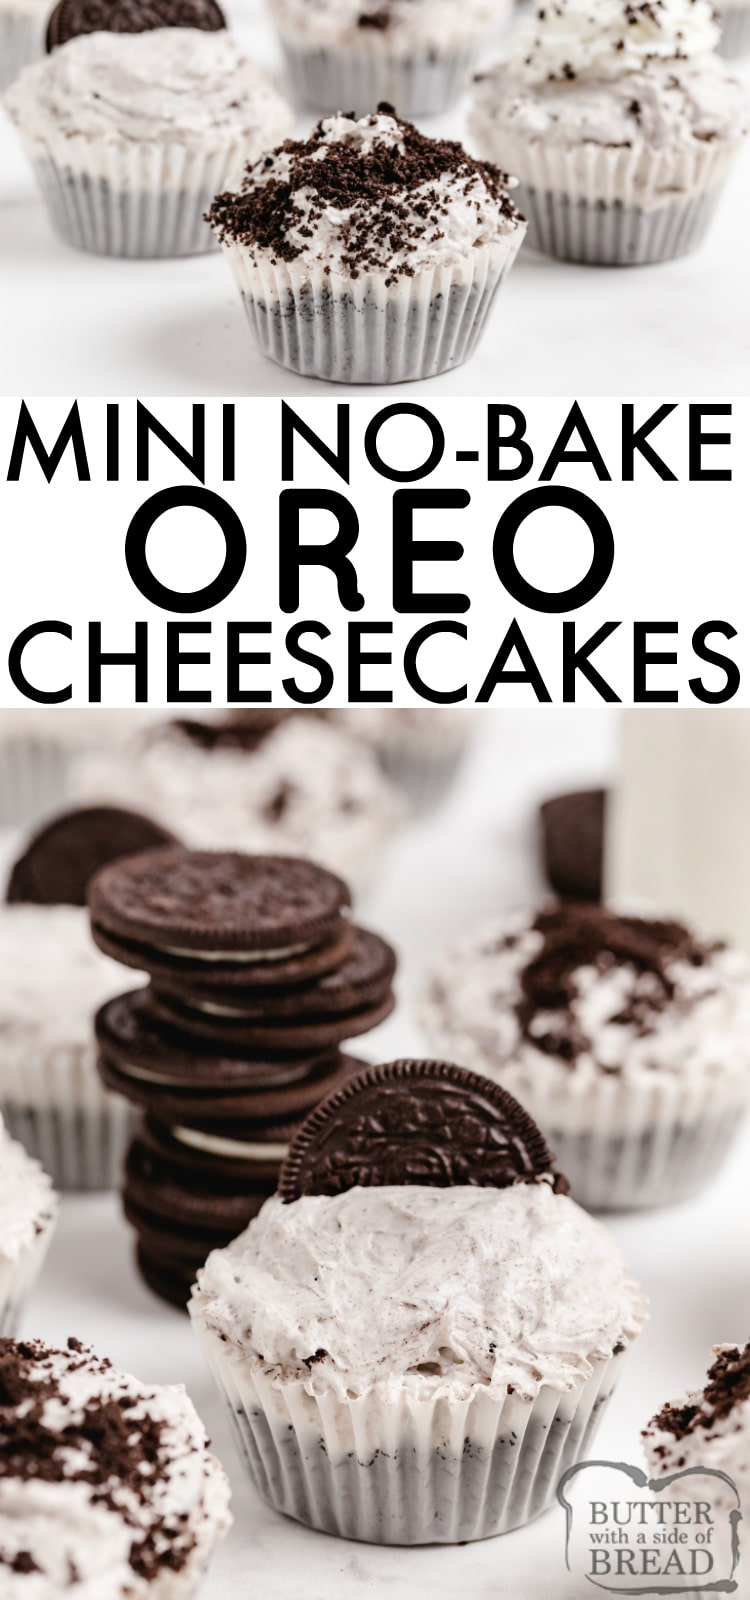 No Bake Mini Oreo Cheesecakes made with Oreos and Oreo pudding are delicious! This easy no bake cheesecake recipemade withonly 6 ingredients is the perfectdessert recipe!